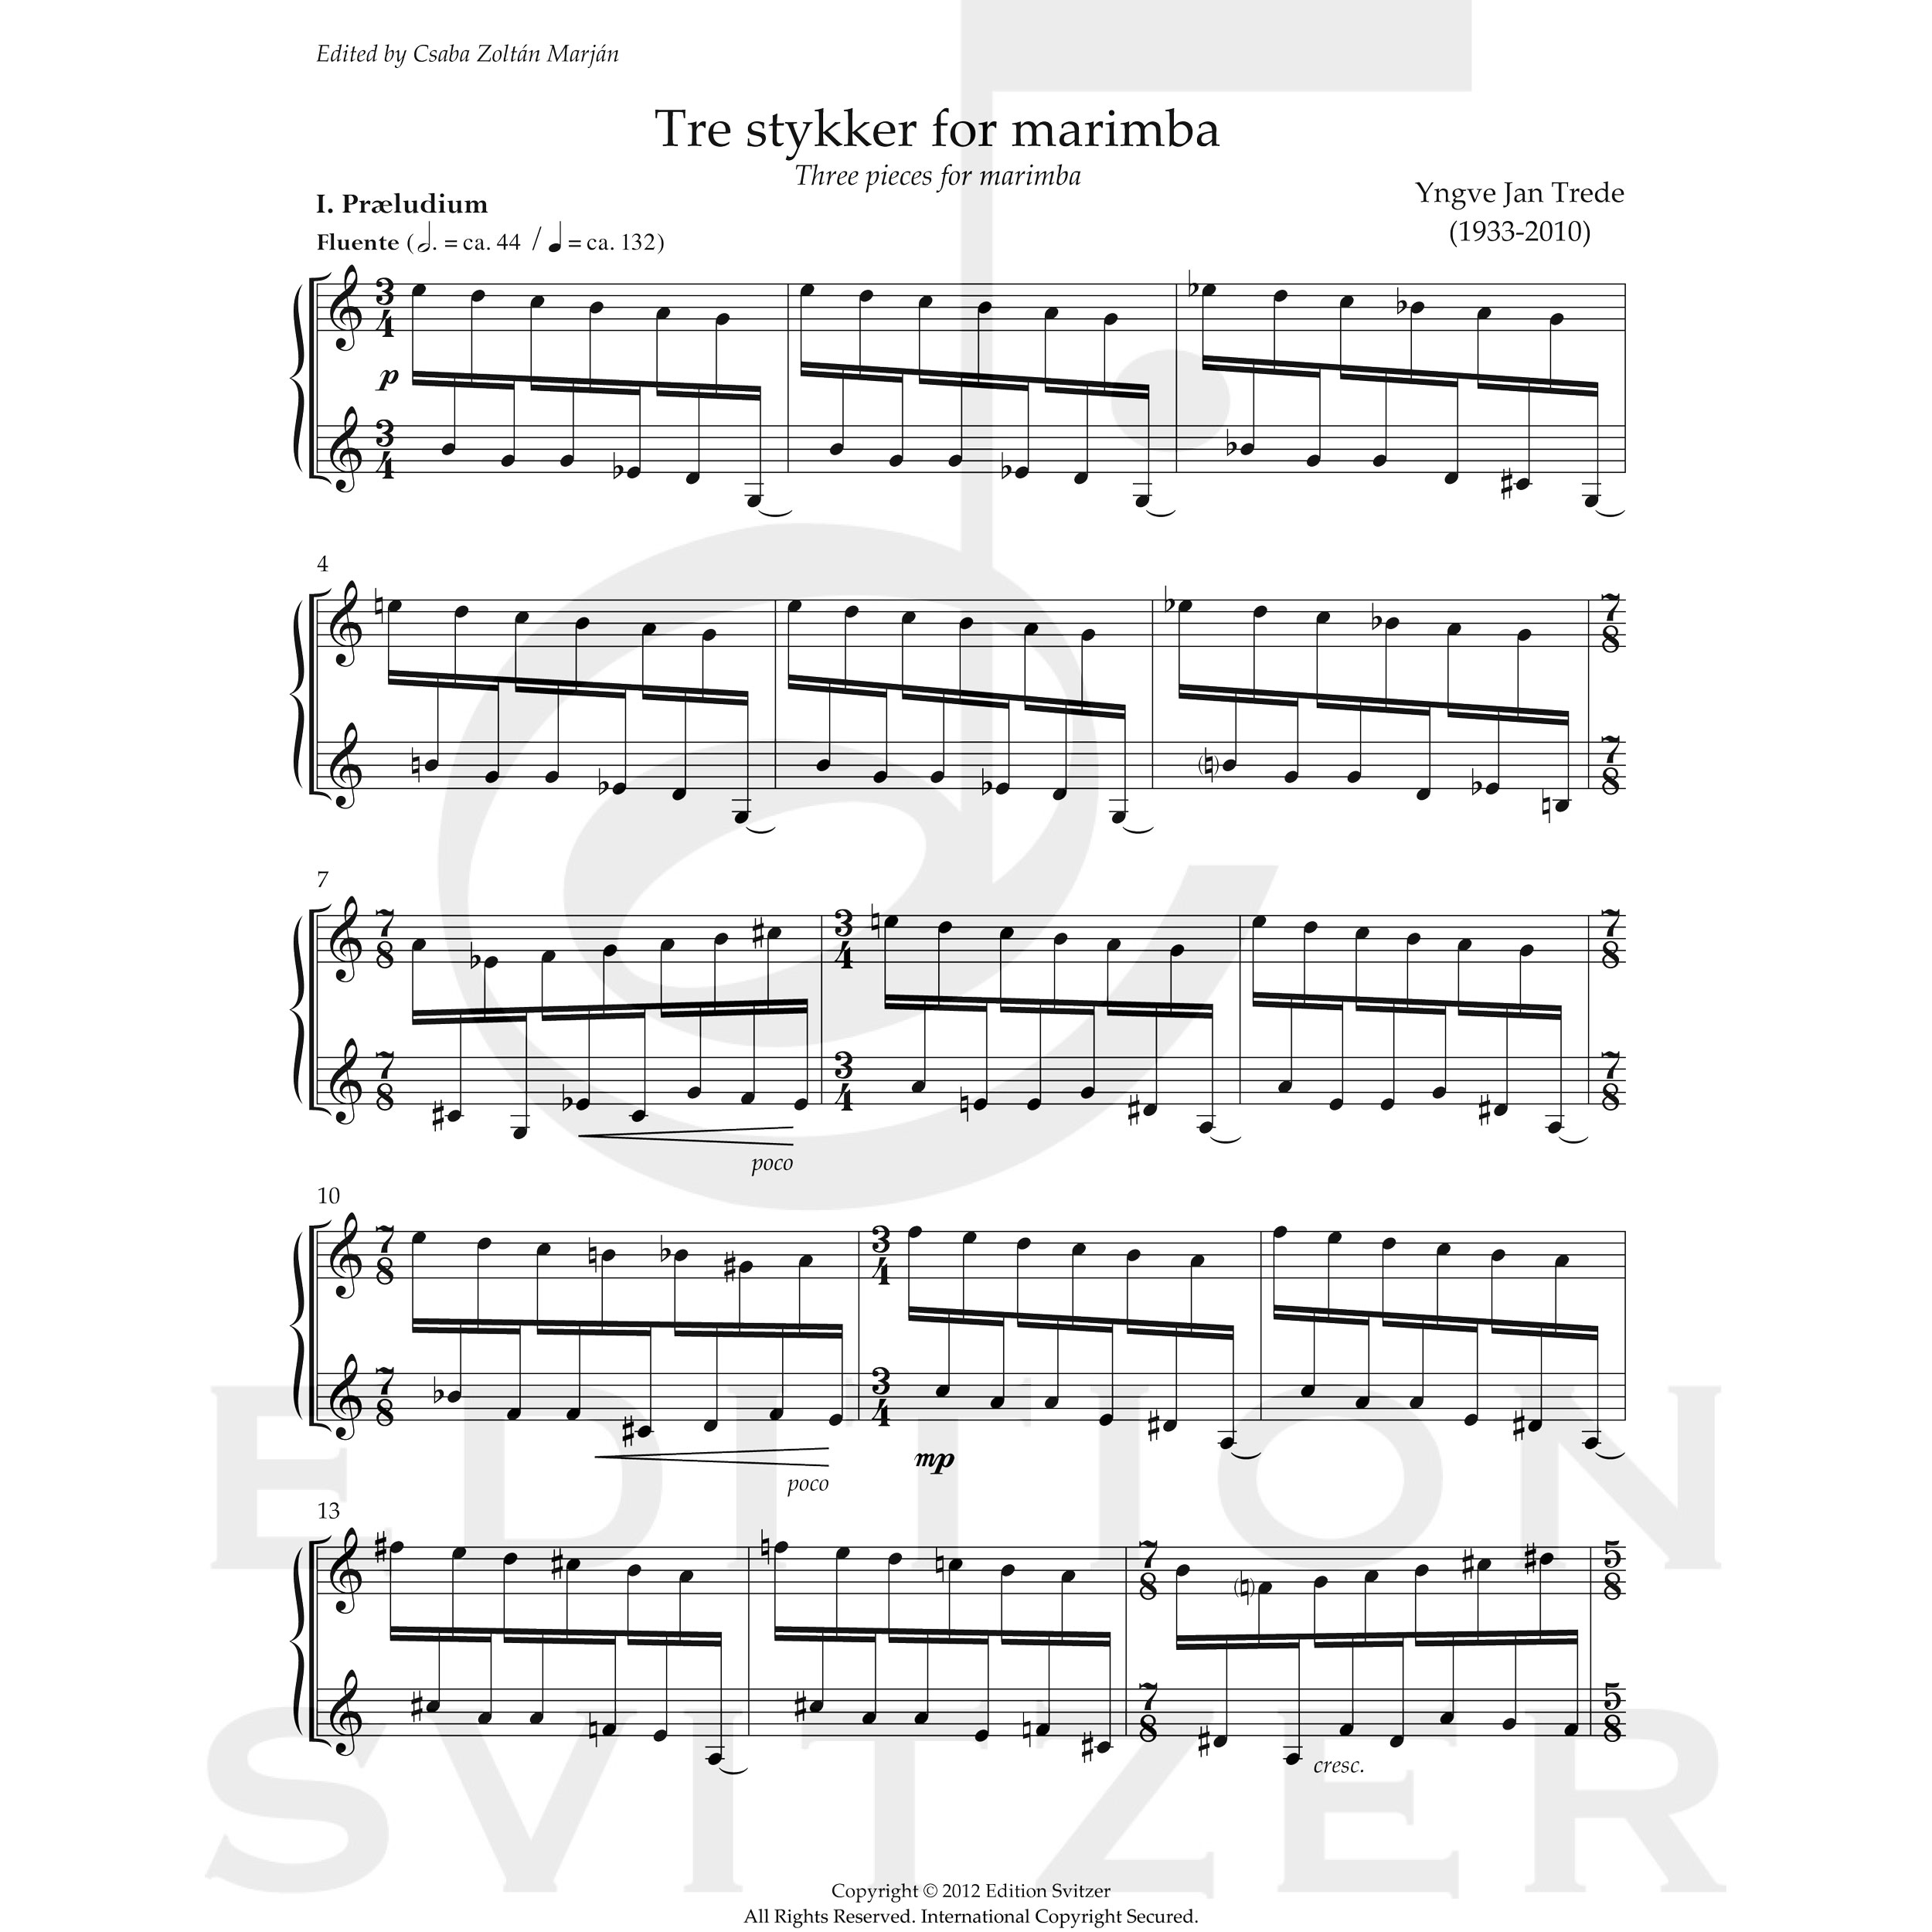 Three Pieces for Marimba by Yngve Jan Trede